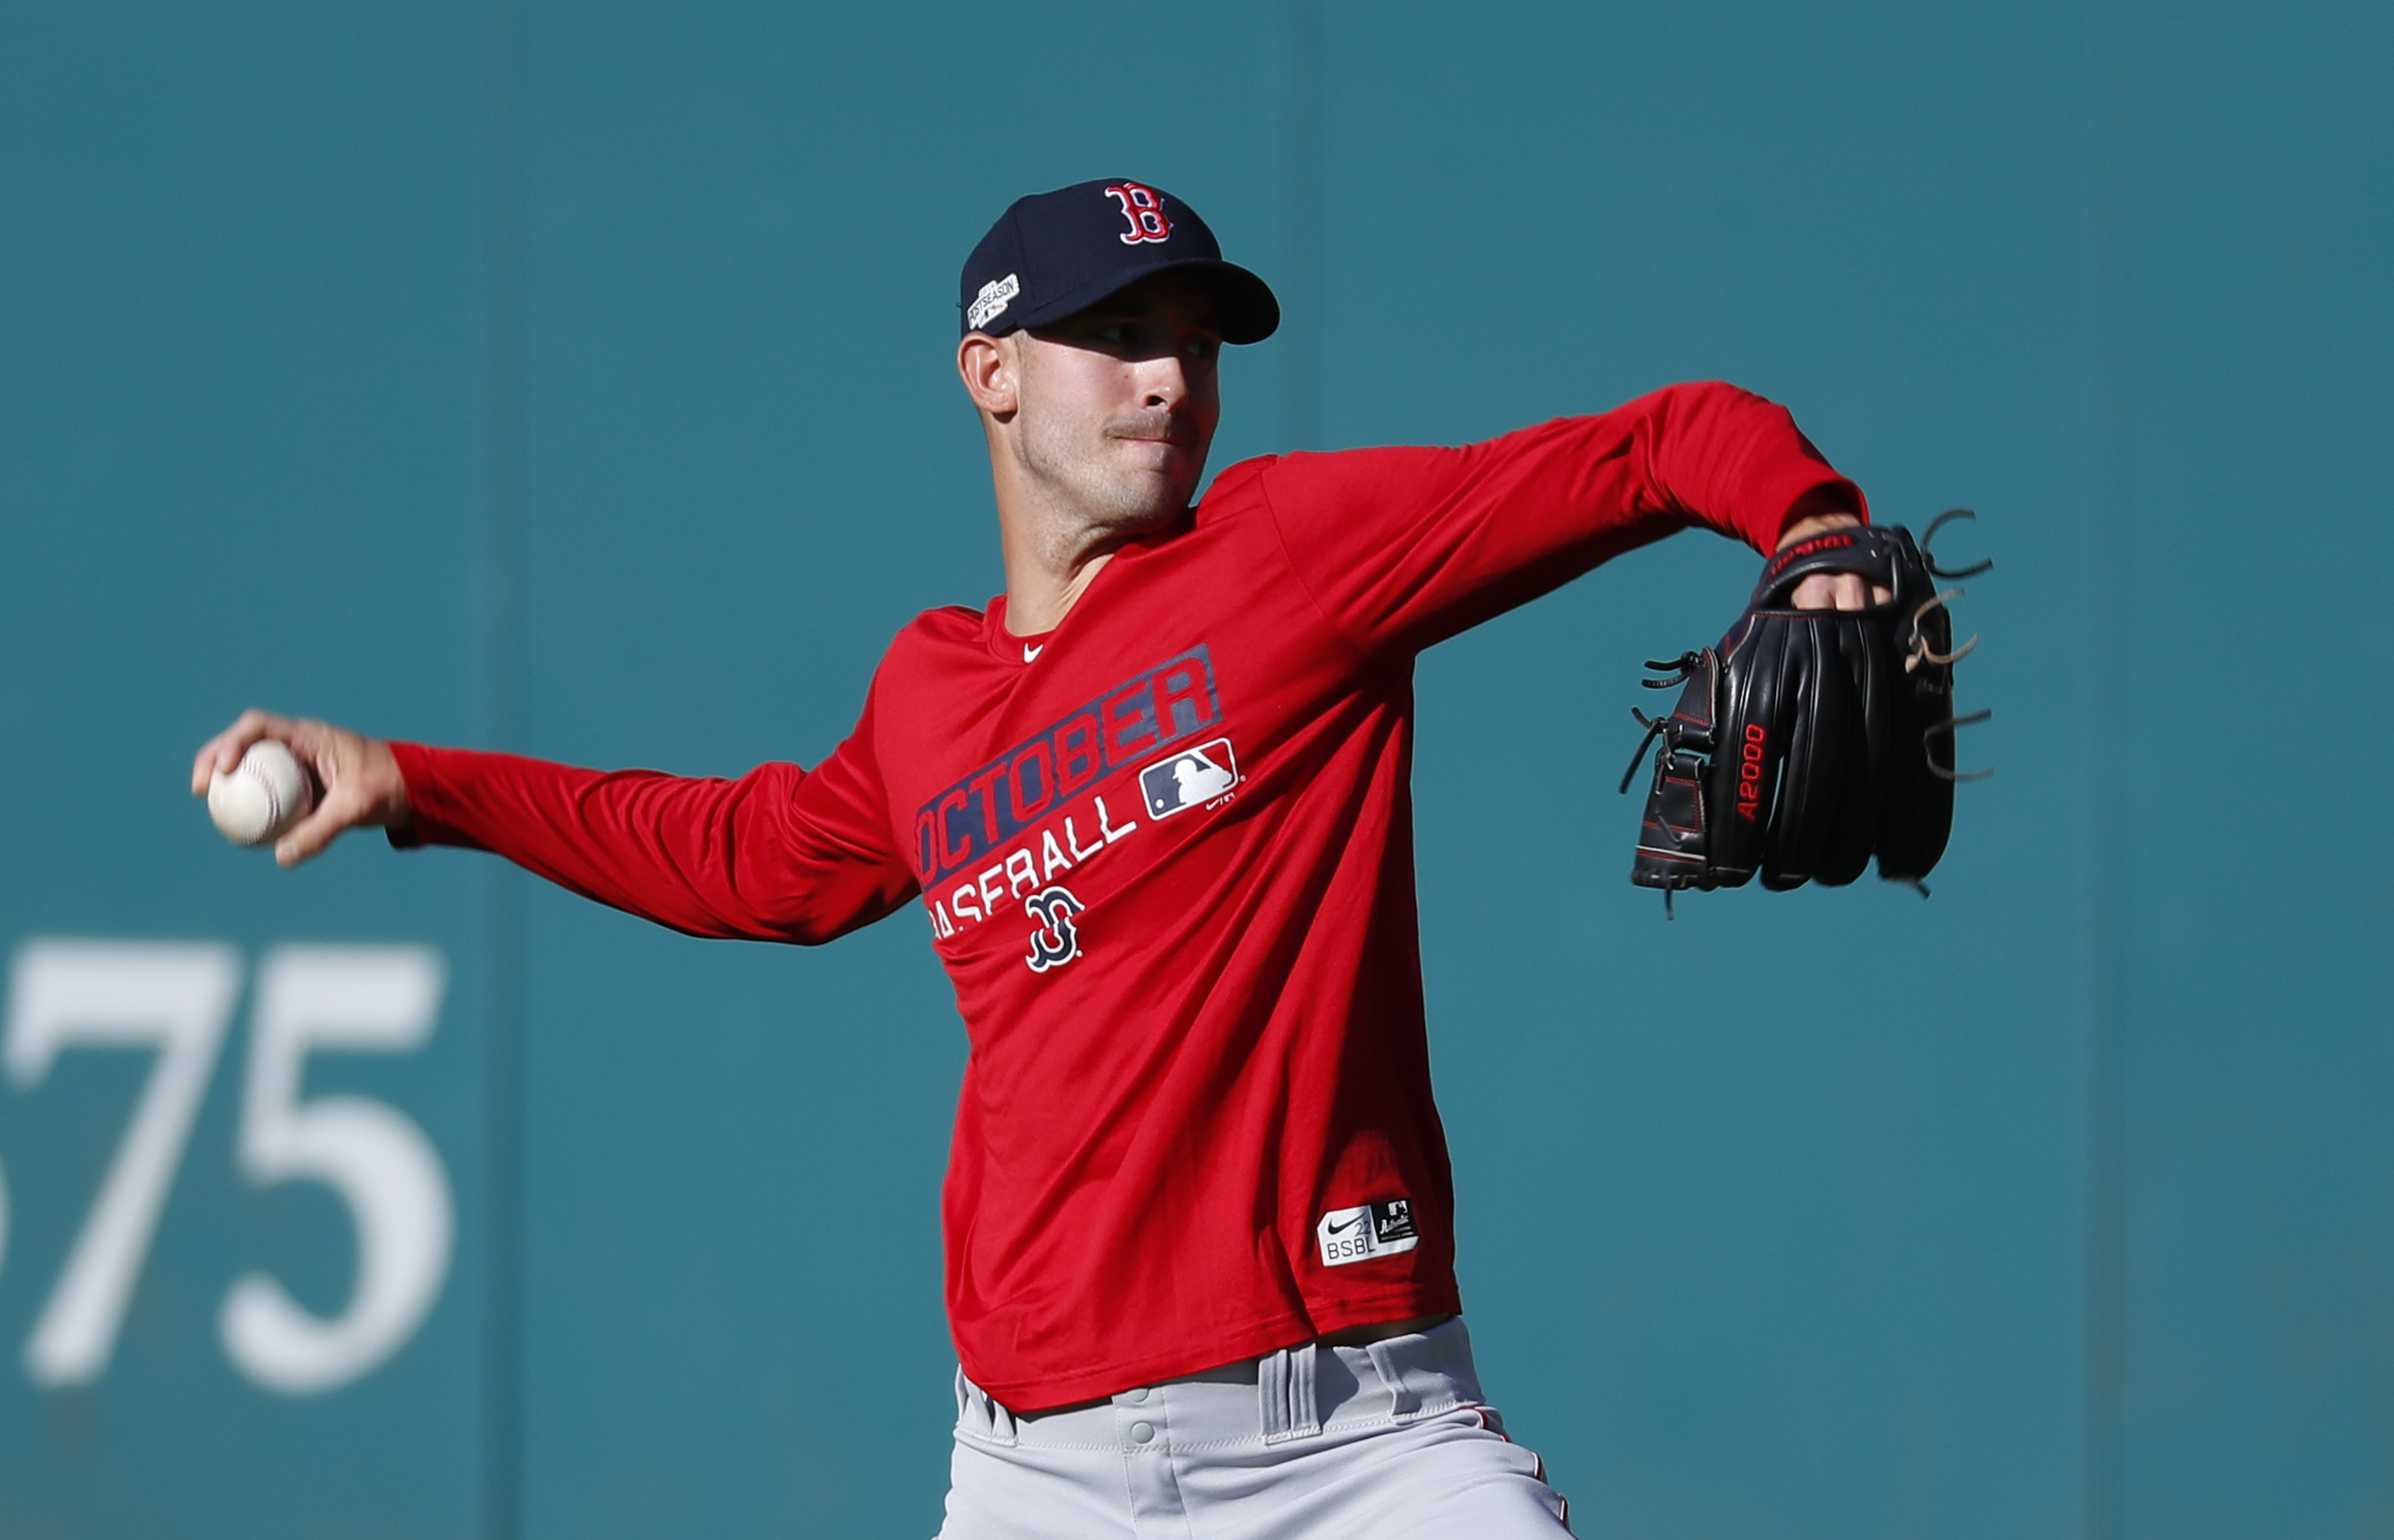 Boston Red Sox pitcher Rick Porcello throws during baseball practice in Cleveland, Wednesday, Oct. 5, 2016. The Red Sox take on the Cleveland Indians in Game 1 of baseball's American League Division Series Thursday. (AP Photo/Paul Sancya)